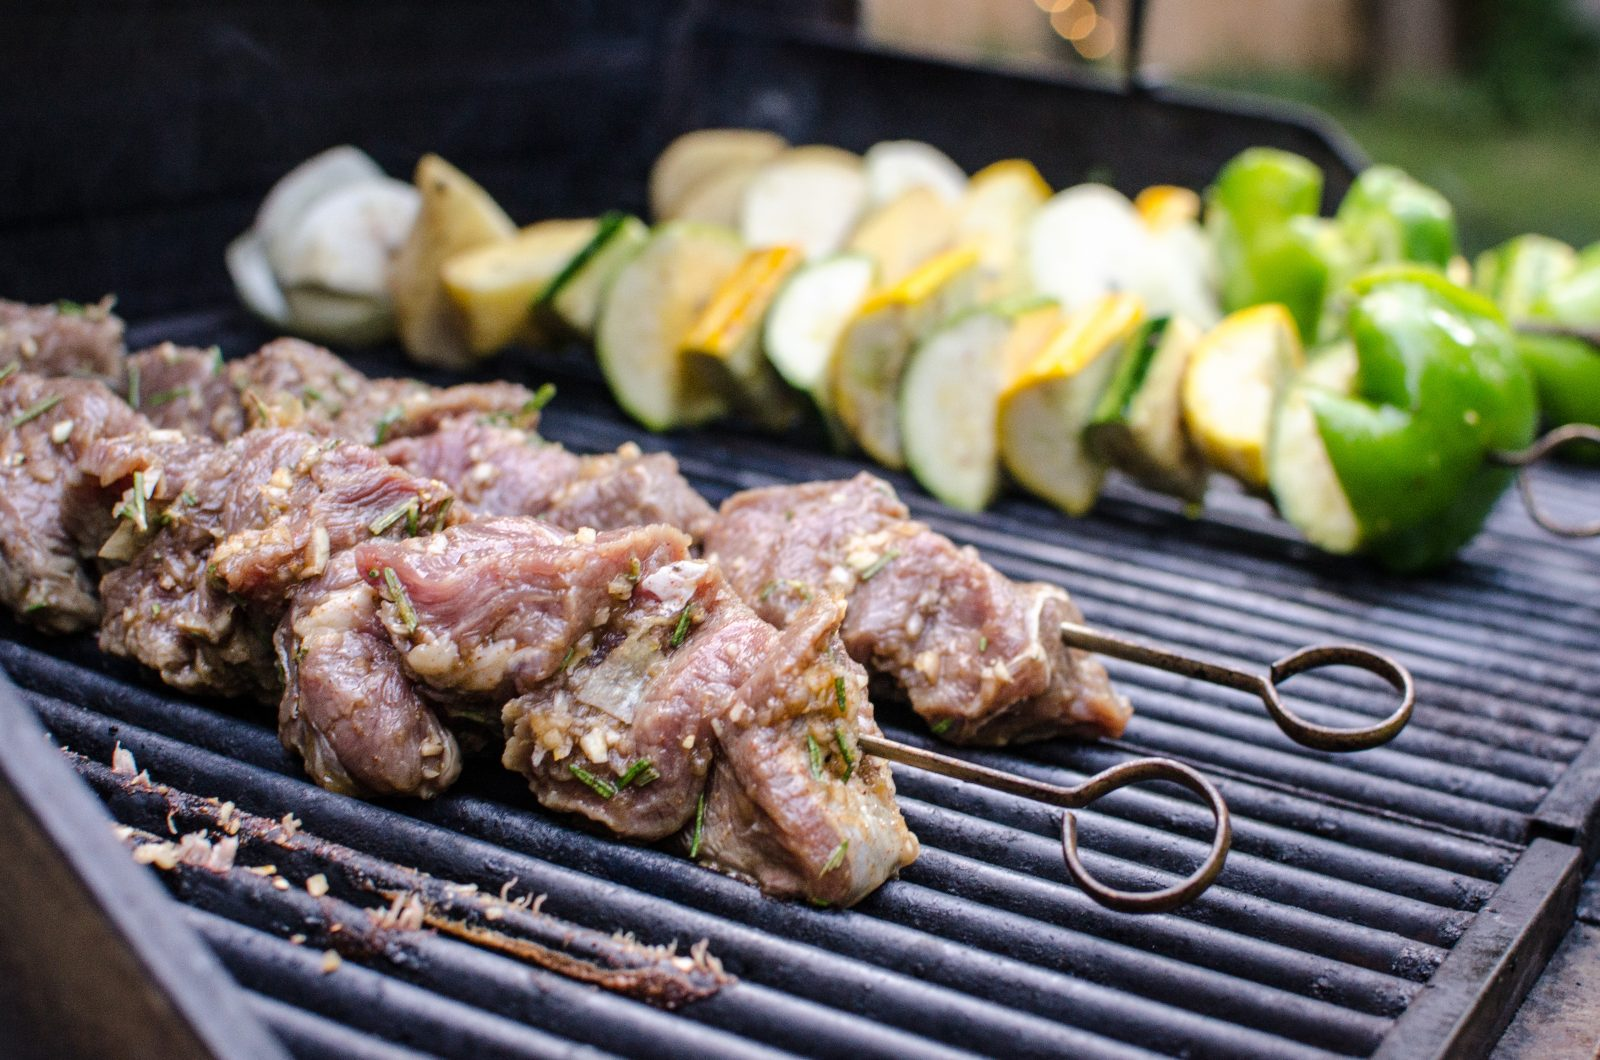 grass-fed beef kebabs on the grill